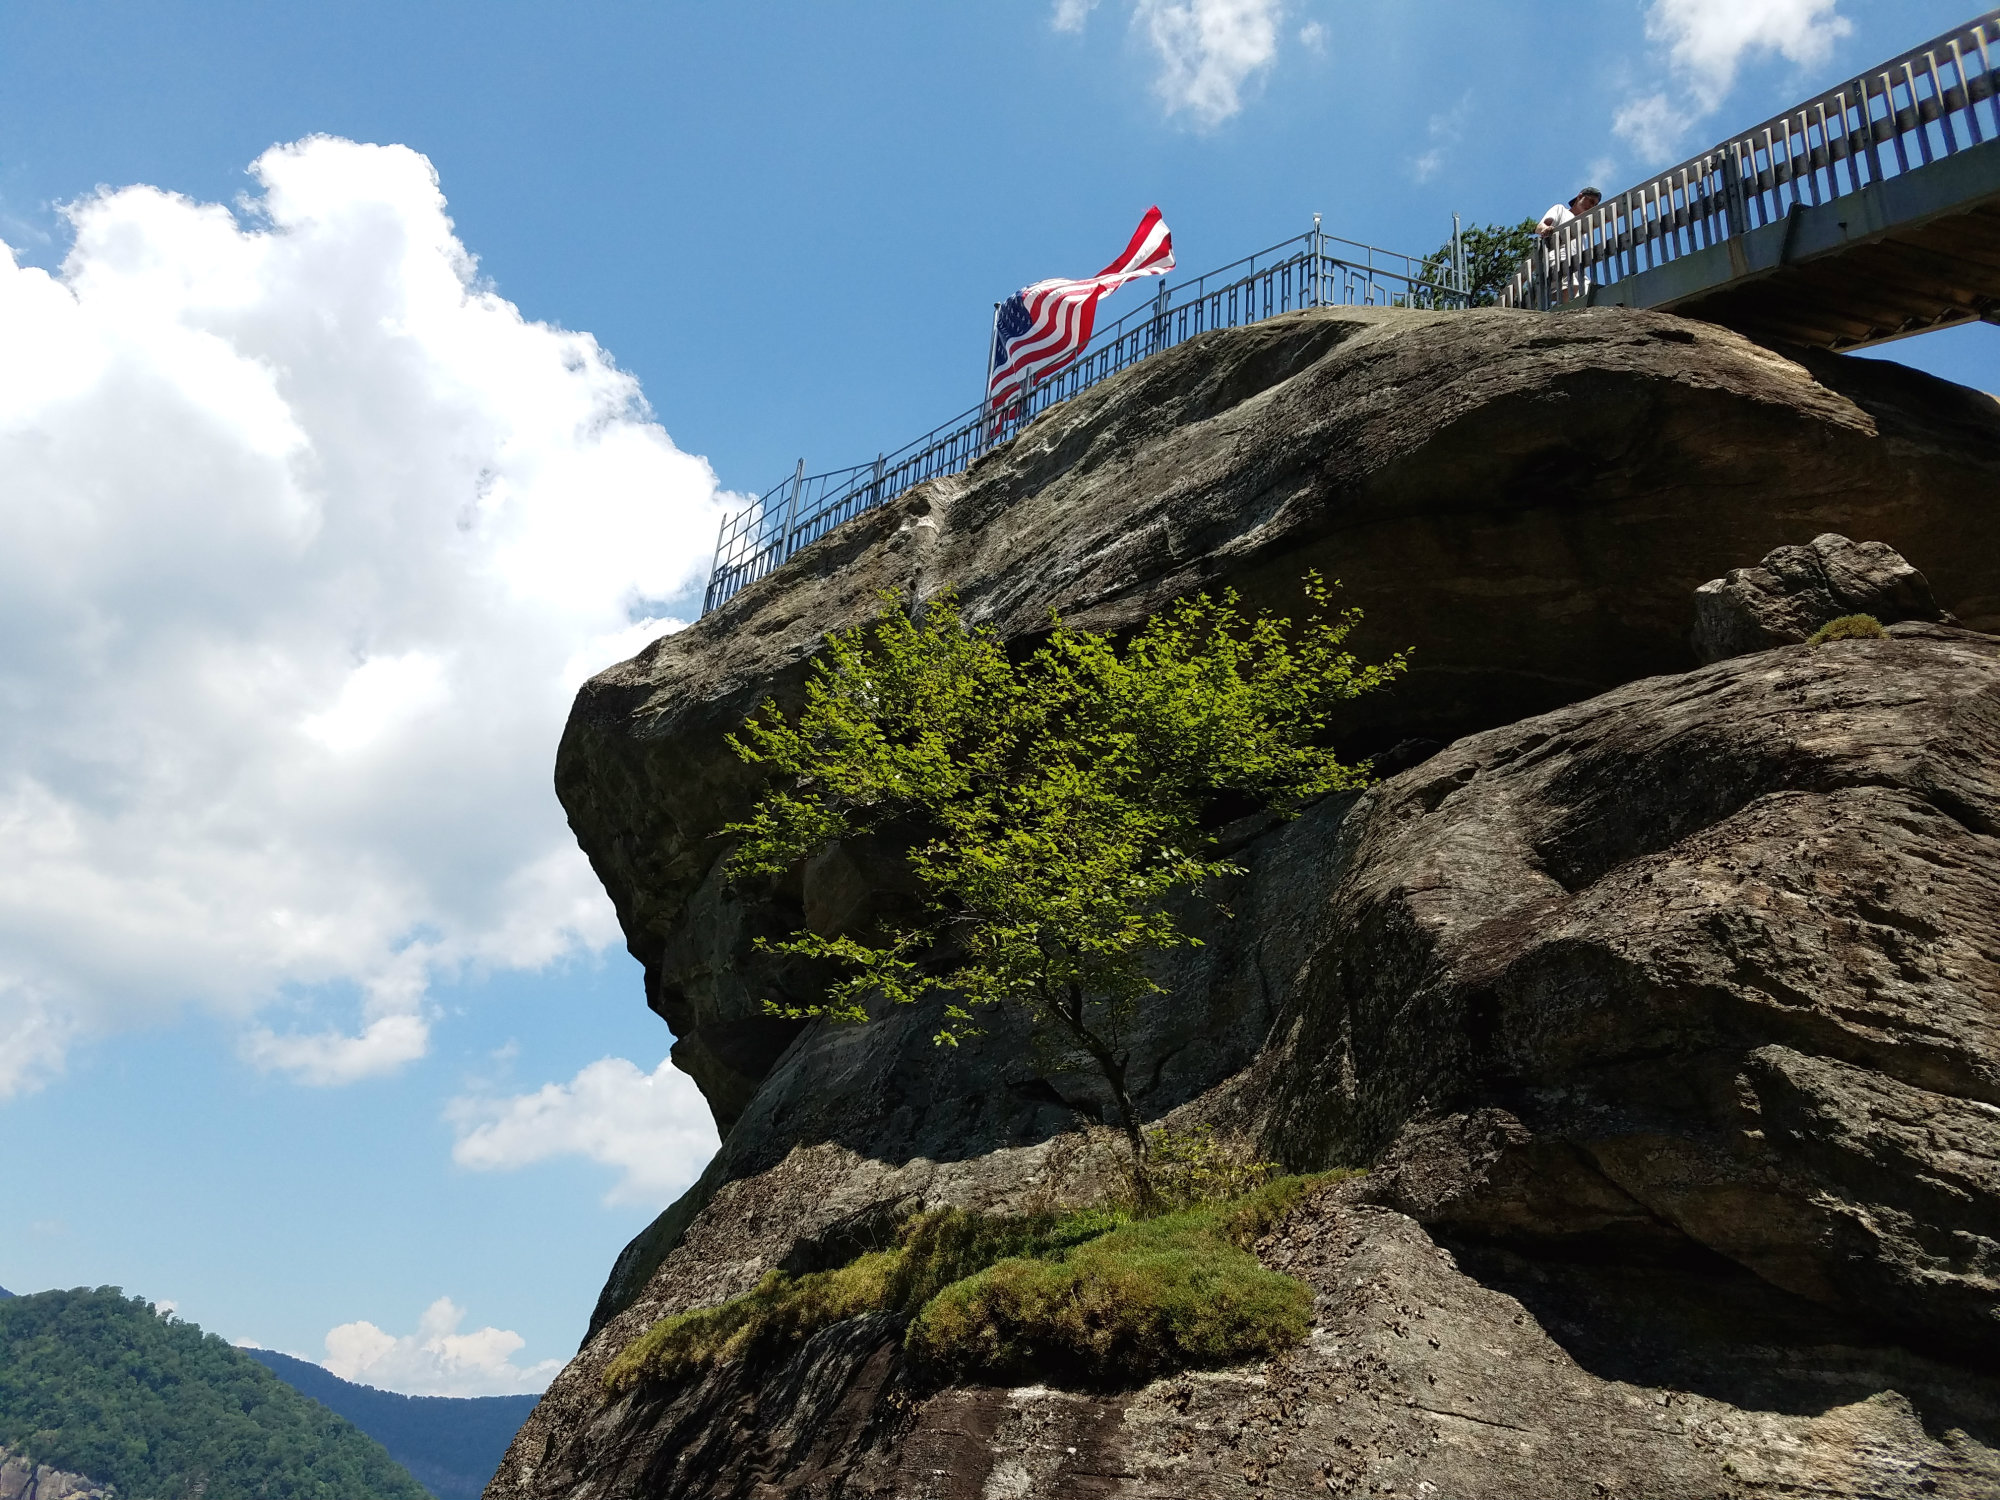 Small tree growing on the side of a large boulder, where a flag flies on top